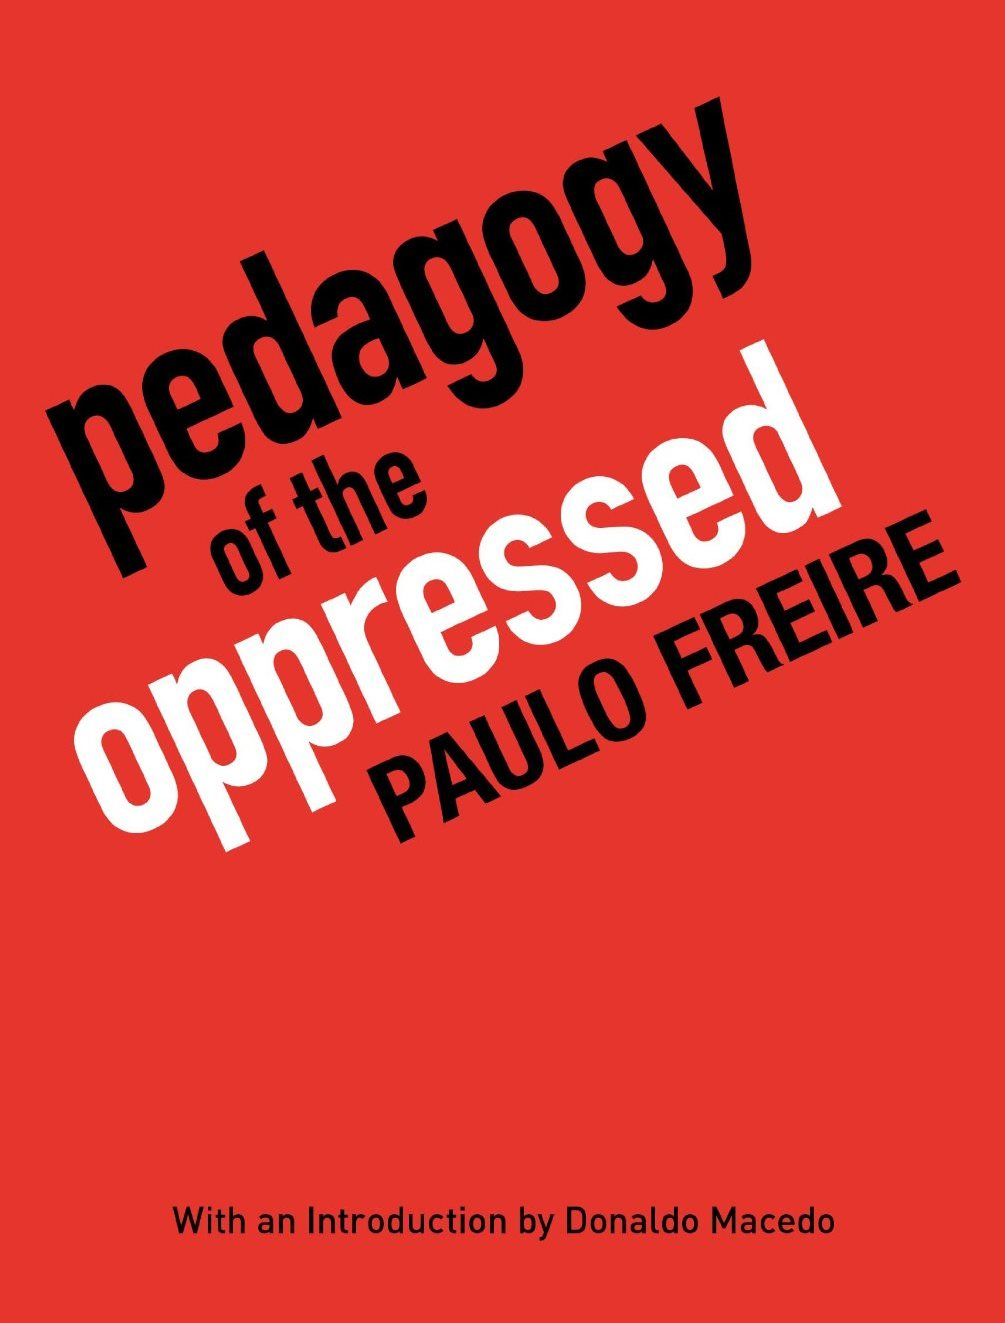 pedagogy of the oppressed analysis Pedagogy of the oppressed (portuguese: pedagogia do oprimido), written by educator paulo freire, proposes a pedagogy with a new relationship between teacher, student, and society.